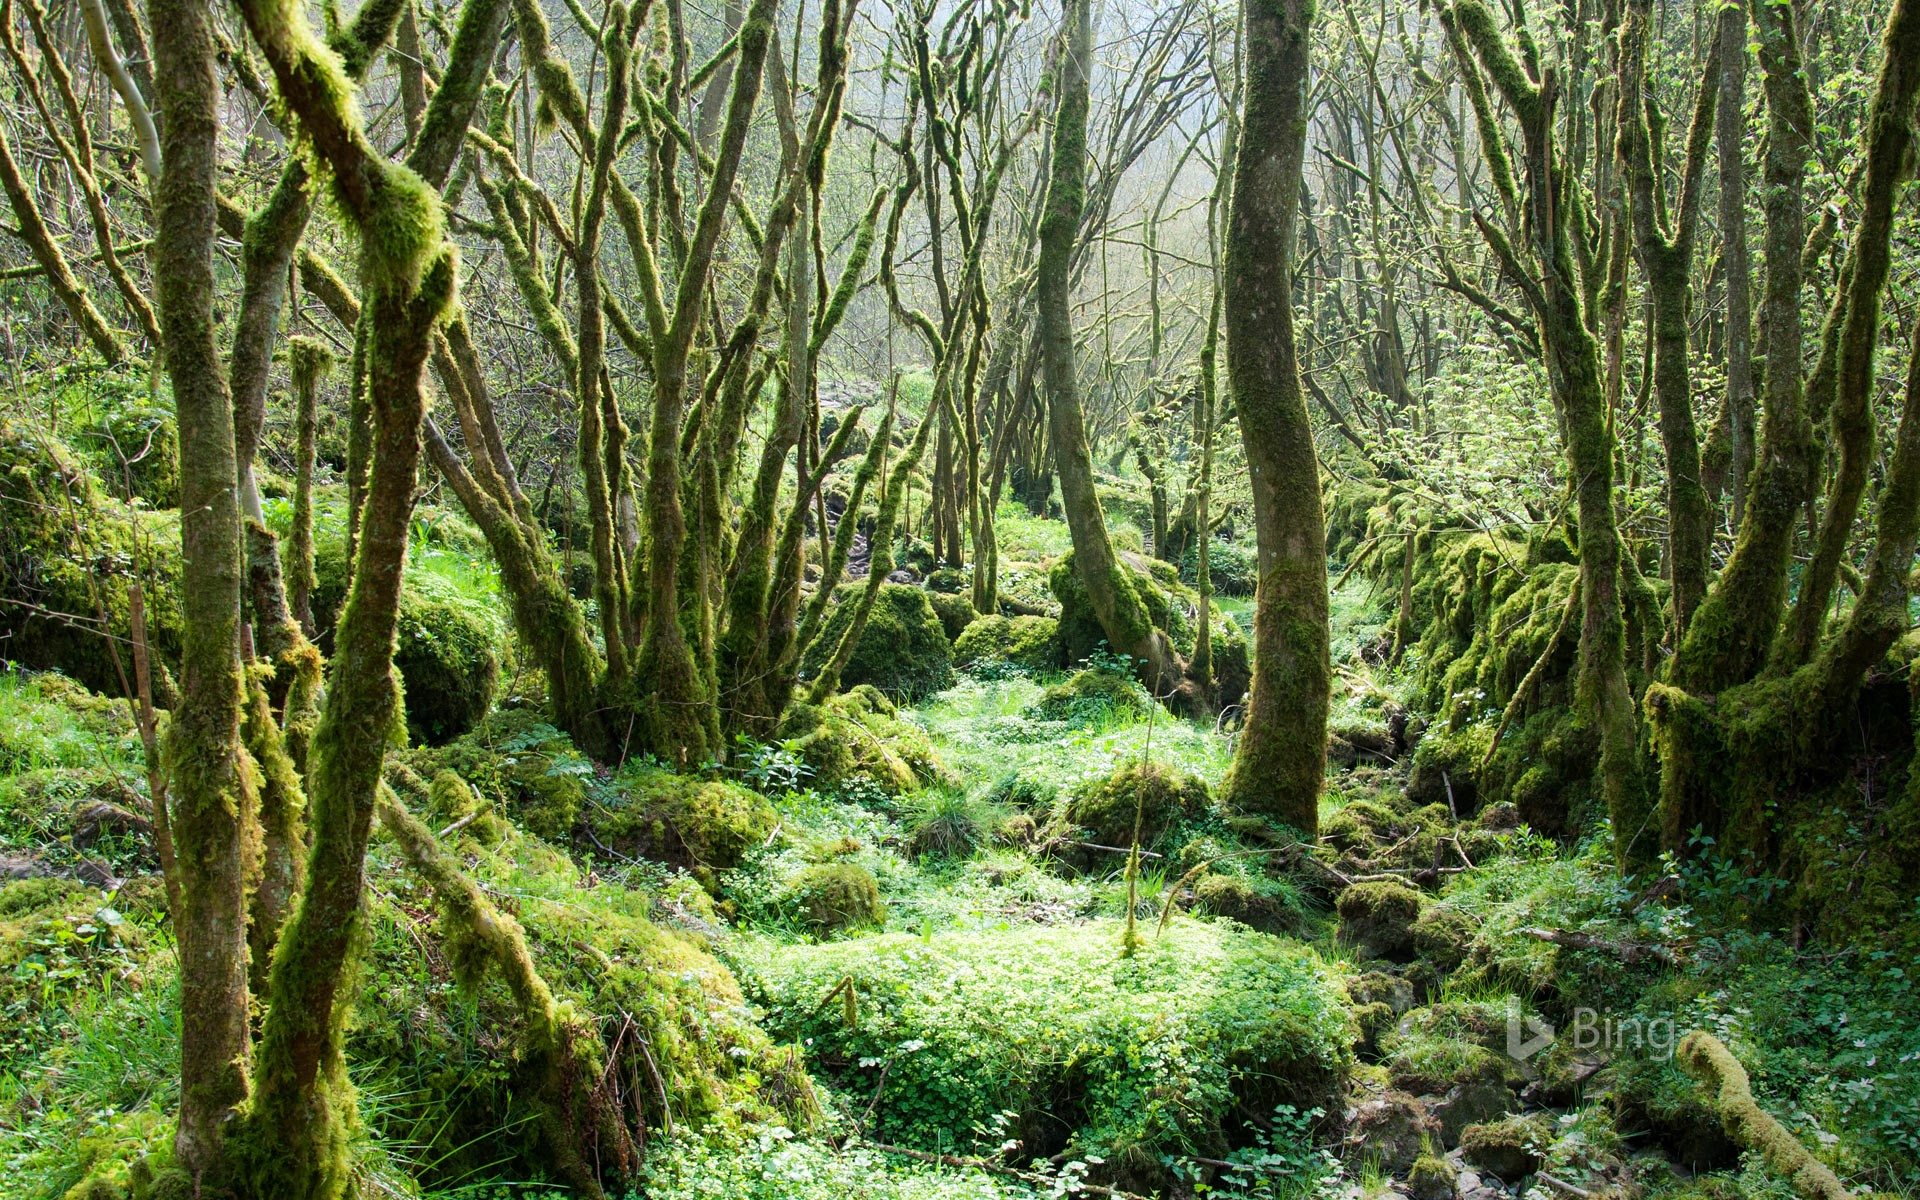 Trees covered in moss at Monk's Dale in the Peak District, Derbyshire